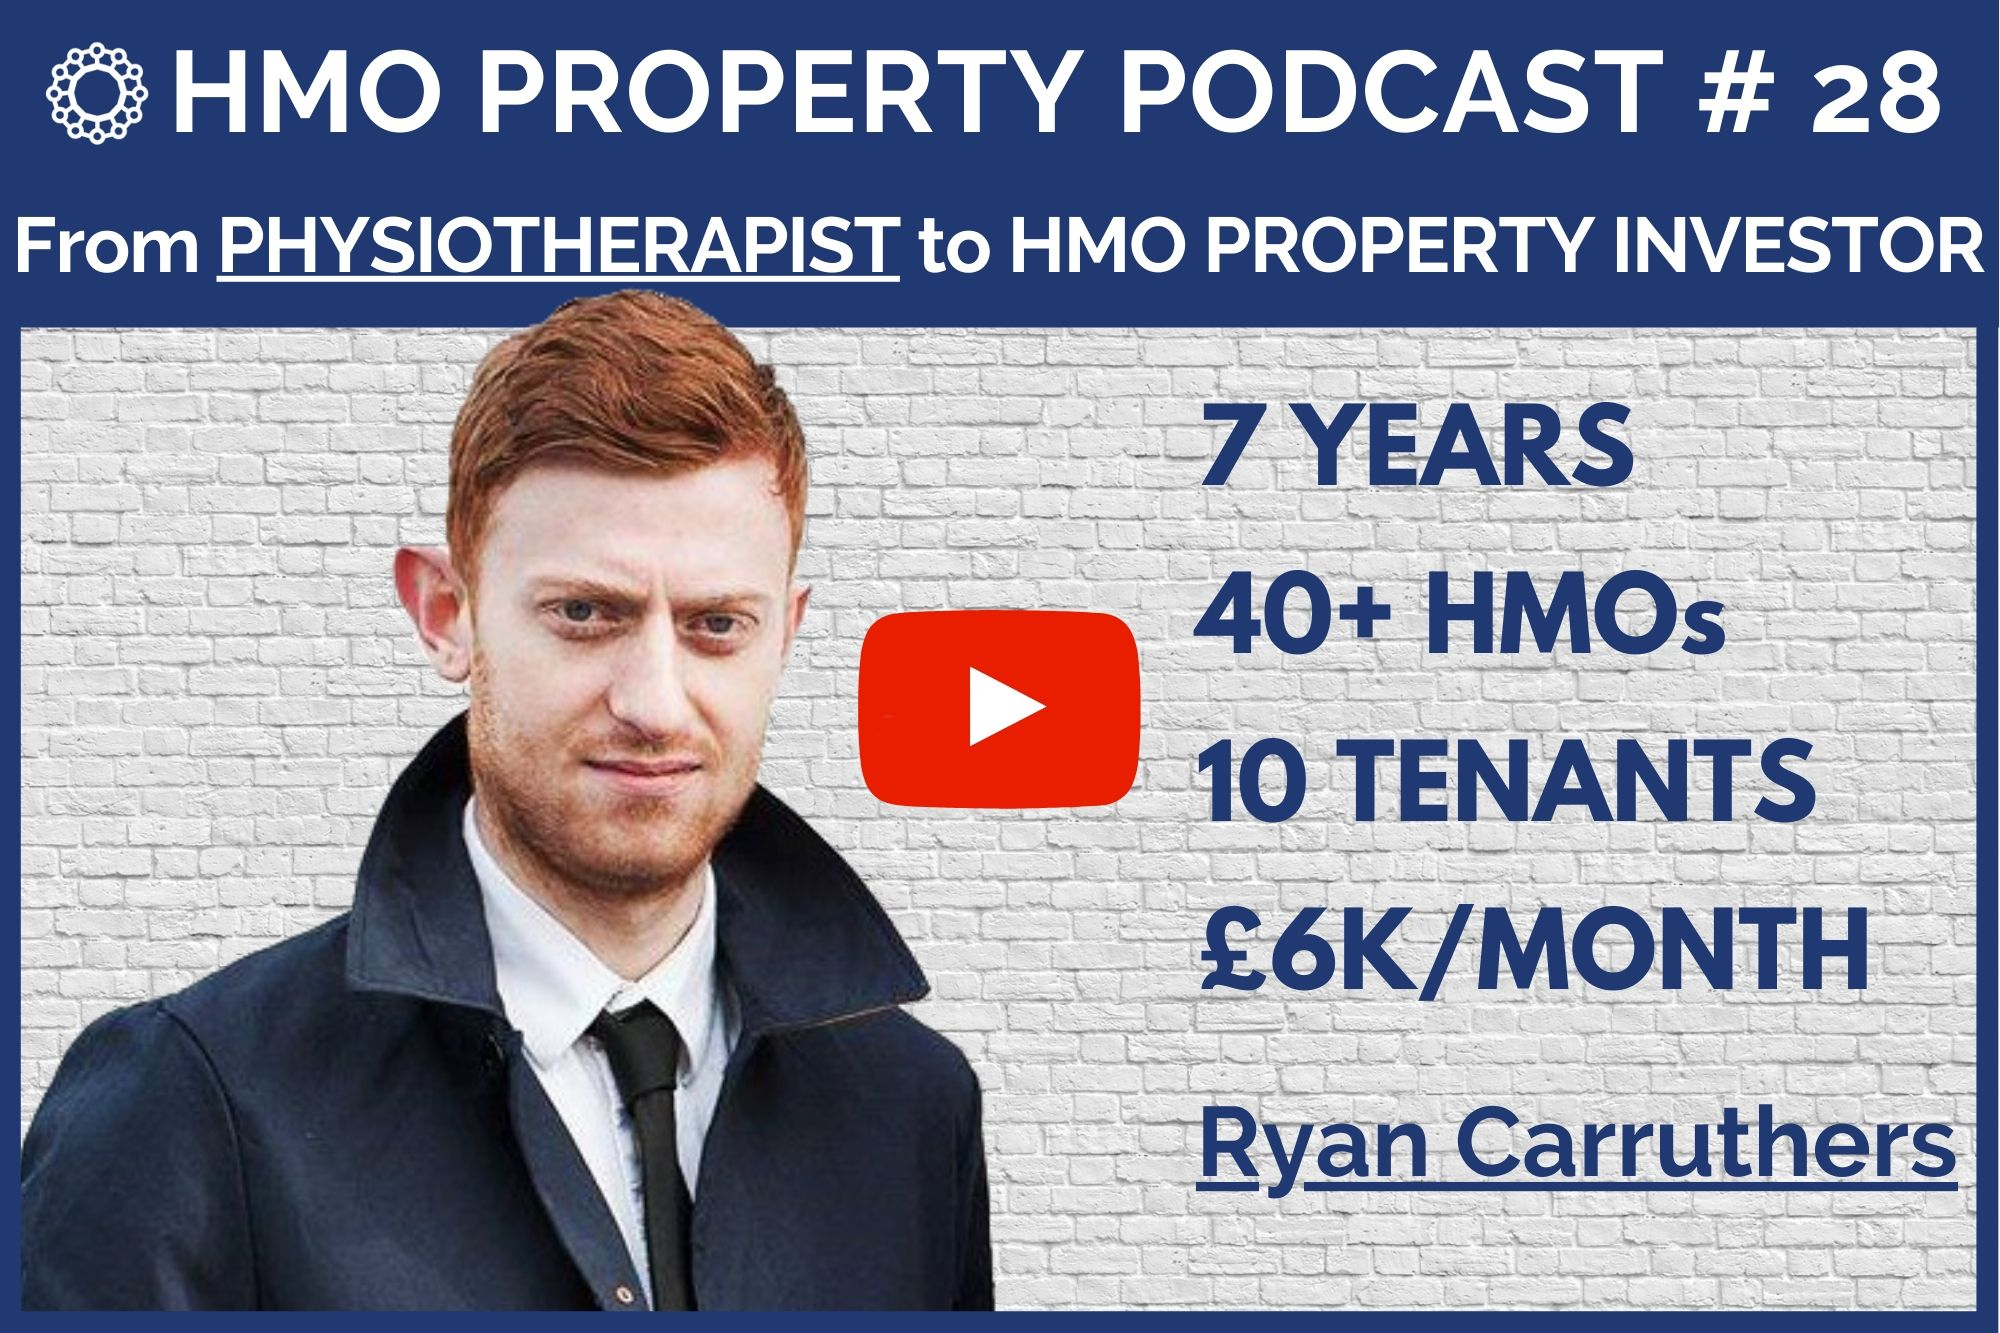 HMO Property Podcast with Ryan Carruthers